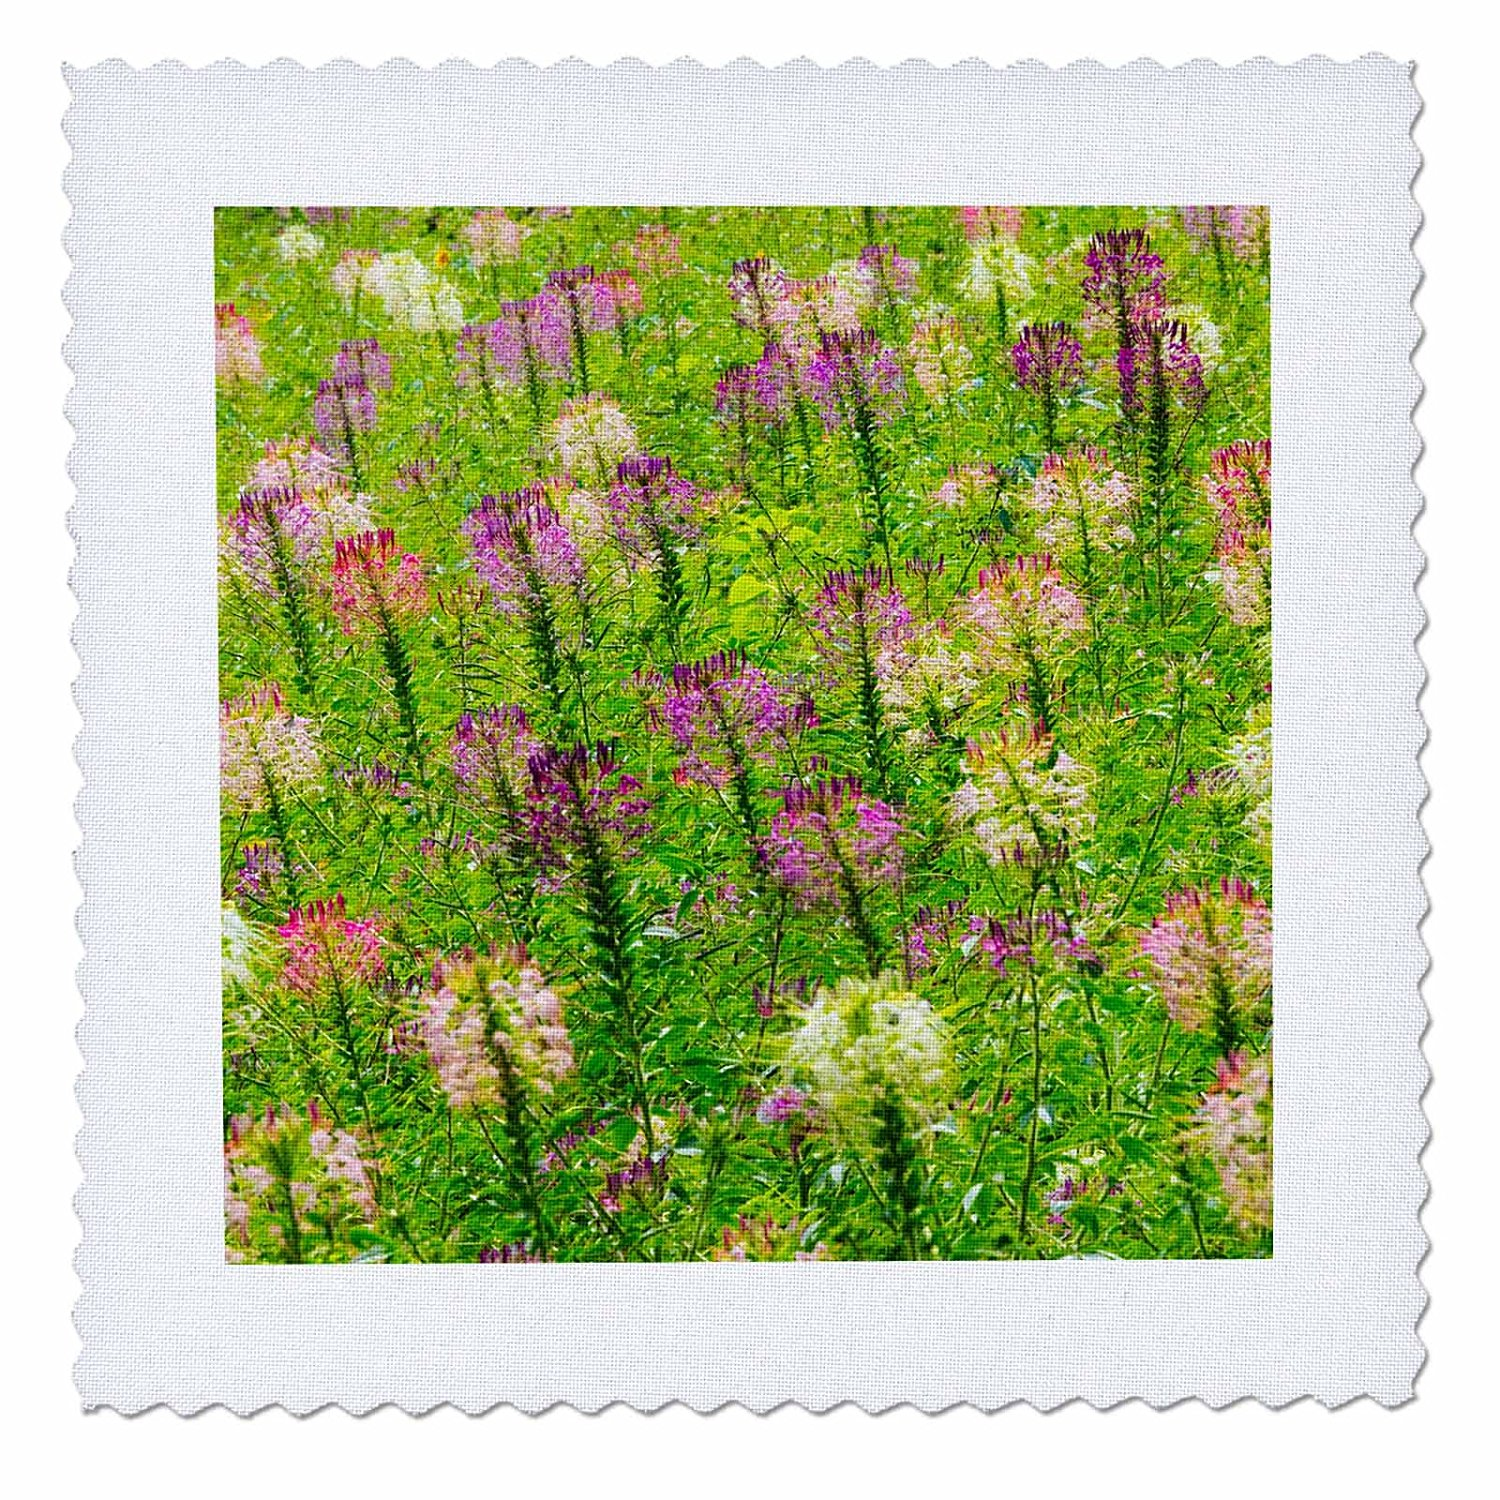 3dRose Danita Delimont - Flowers - Flowers in the flower farm, Furano, Hokkaido Prefecture, Japan - 22x22 inch quilt square (qs_276890_9)